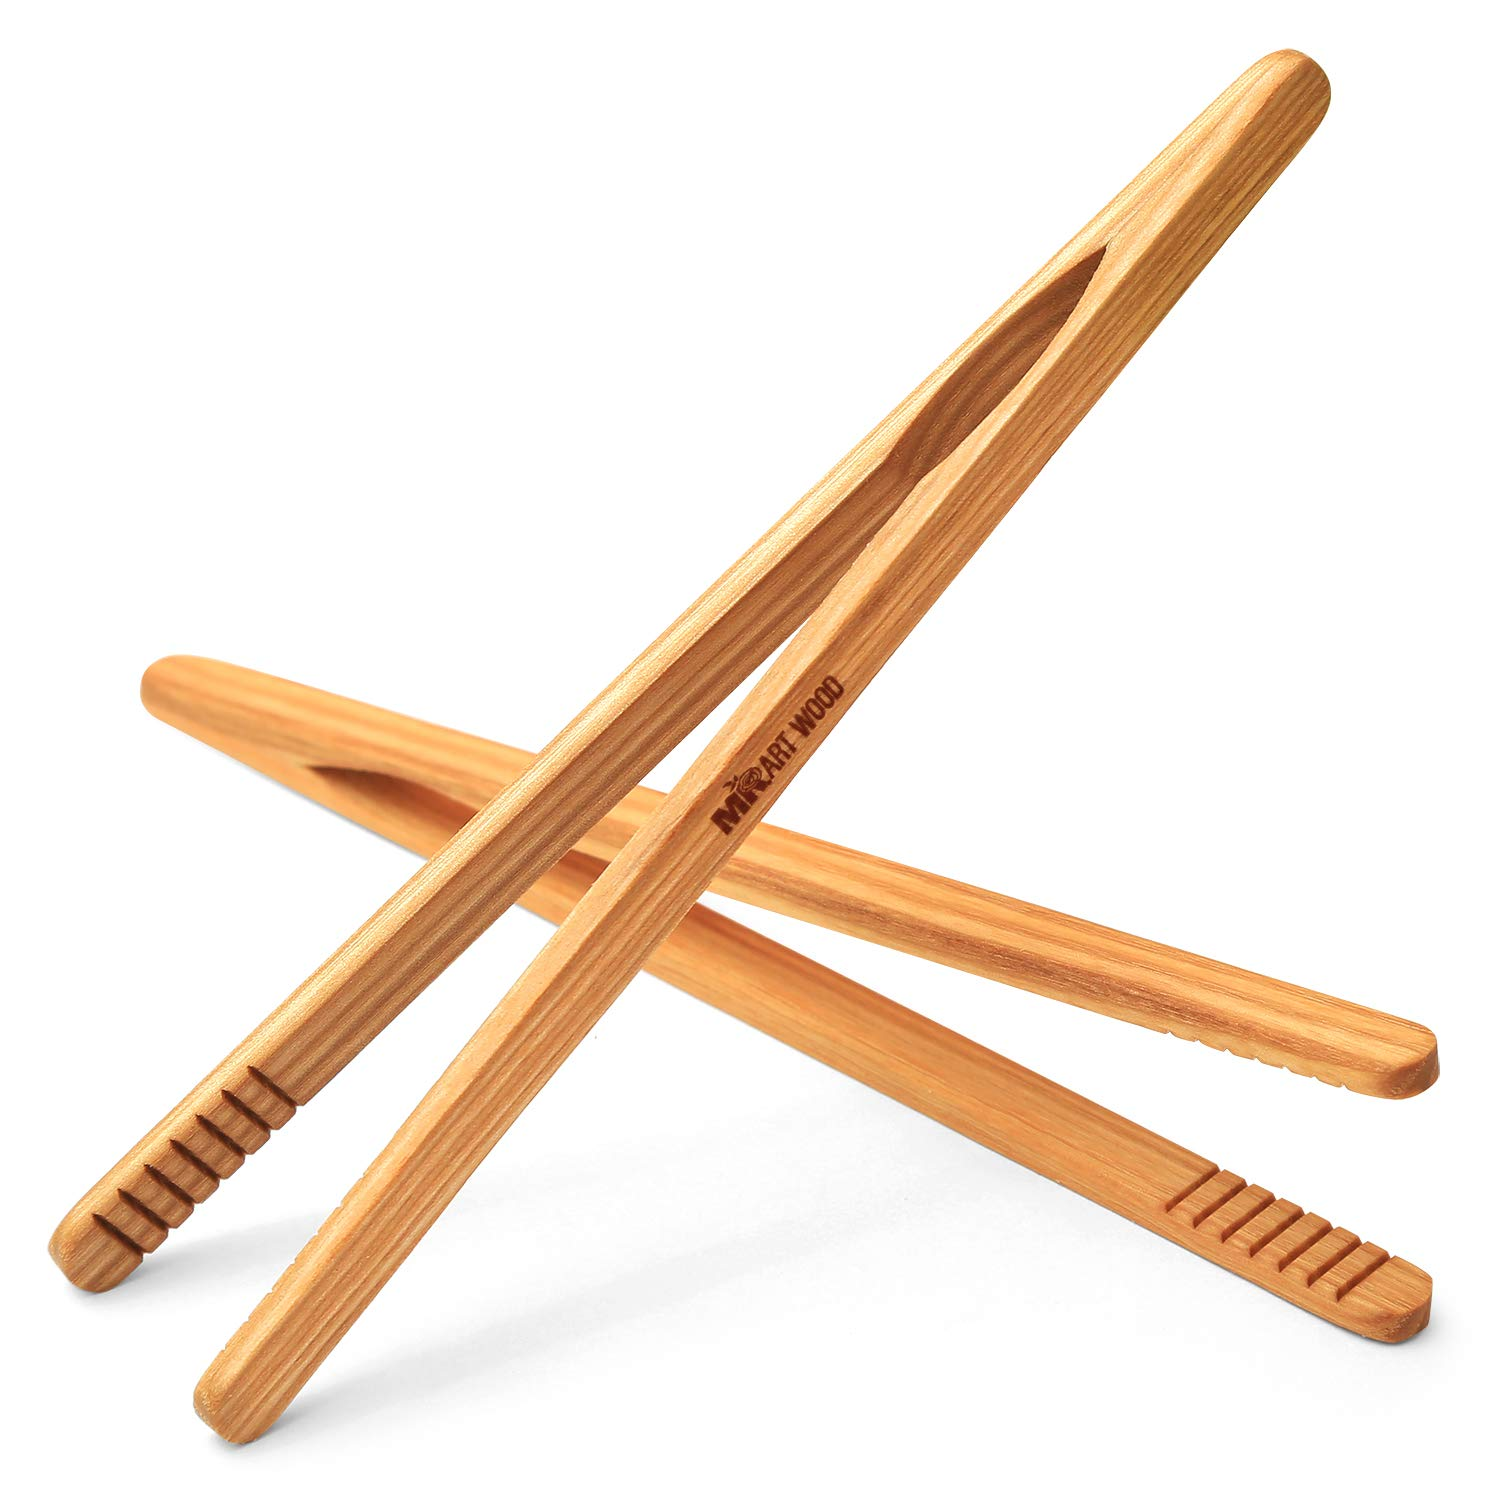 Mr.Art Wood Ultra Grip Wooden Toaster Kitchen Tongs (Pack of 2), 8'' Generous Length, Ideal for Toast, Fruits, Bread & Pickles, 100% Natural Ash Wood